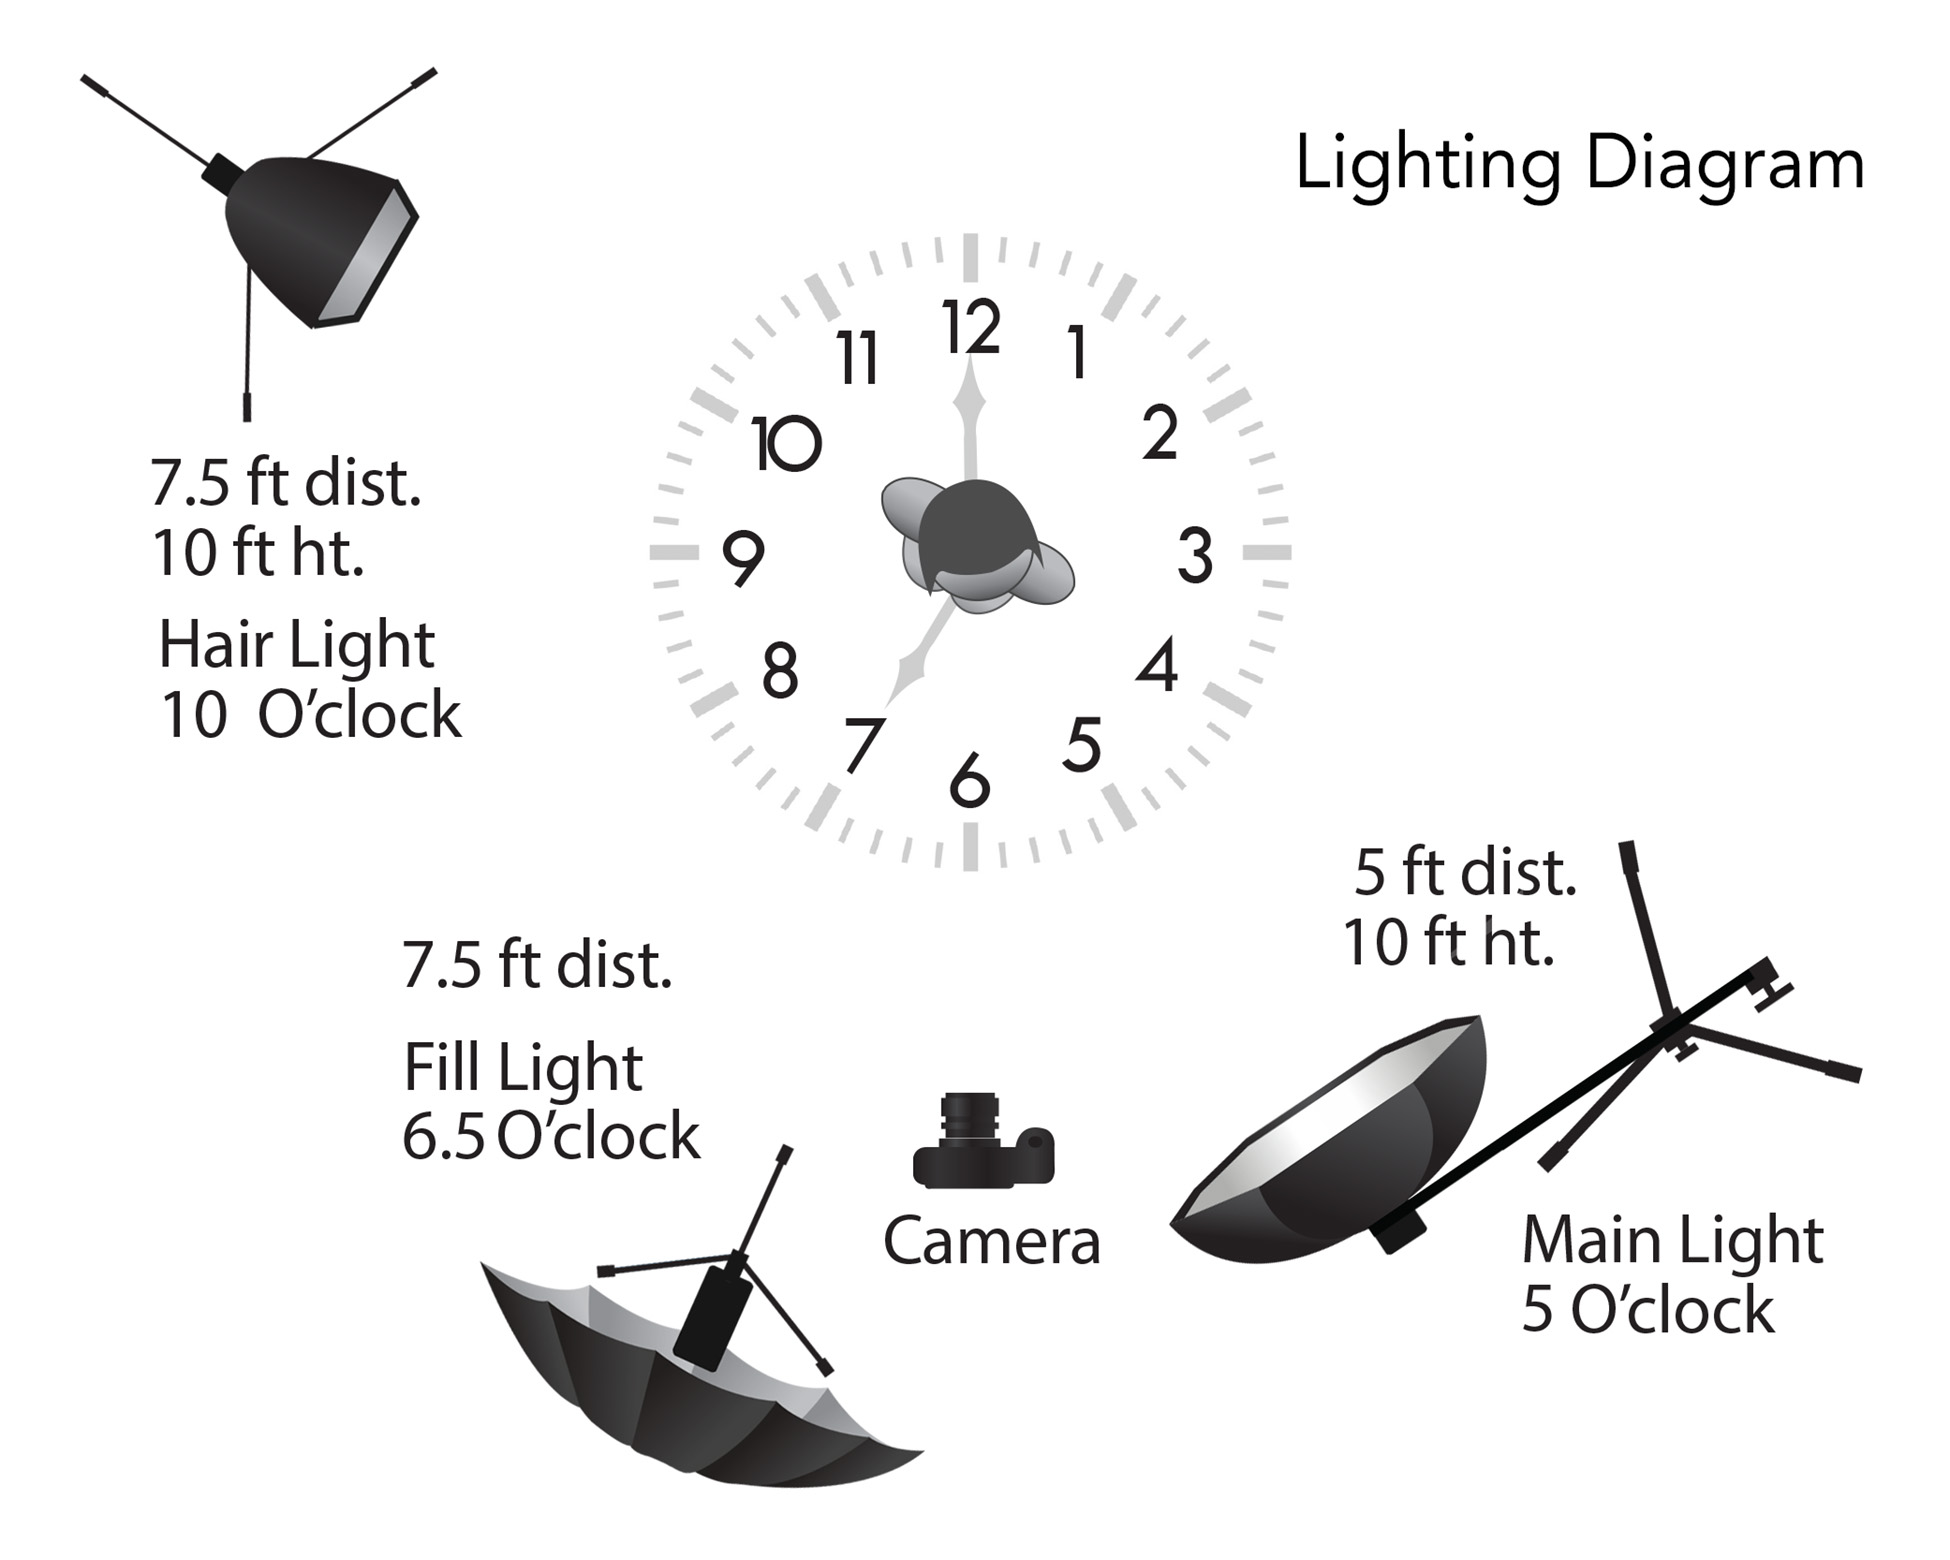 This is a representation of the lighting in the above pull-back photo